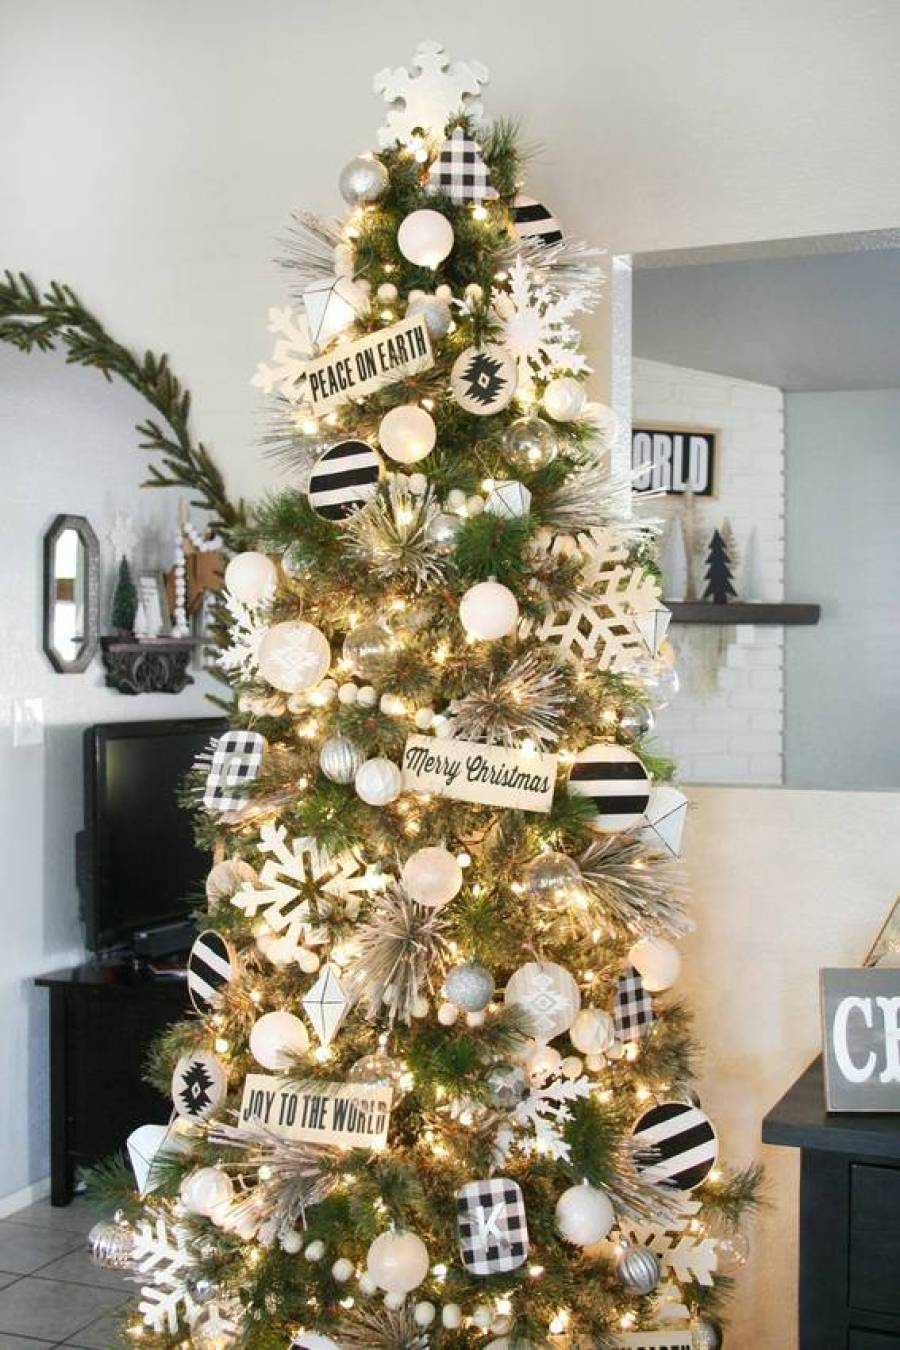 Black and white Christmas color scheme